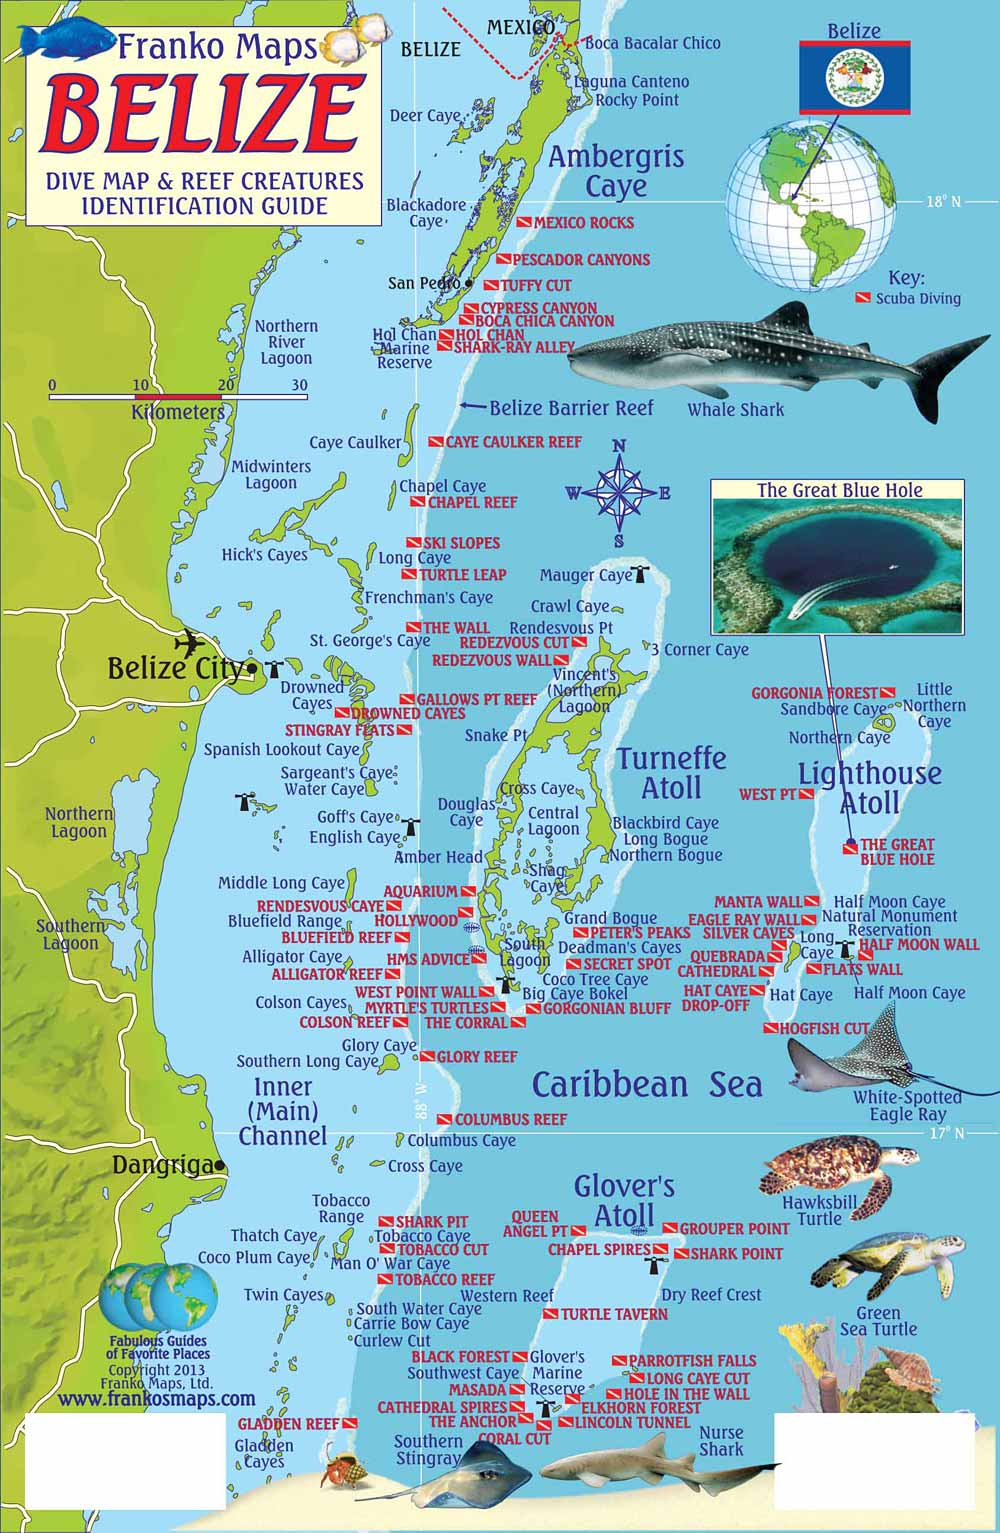 Belize Maps DiveFish ID Cards - Belize map